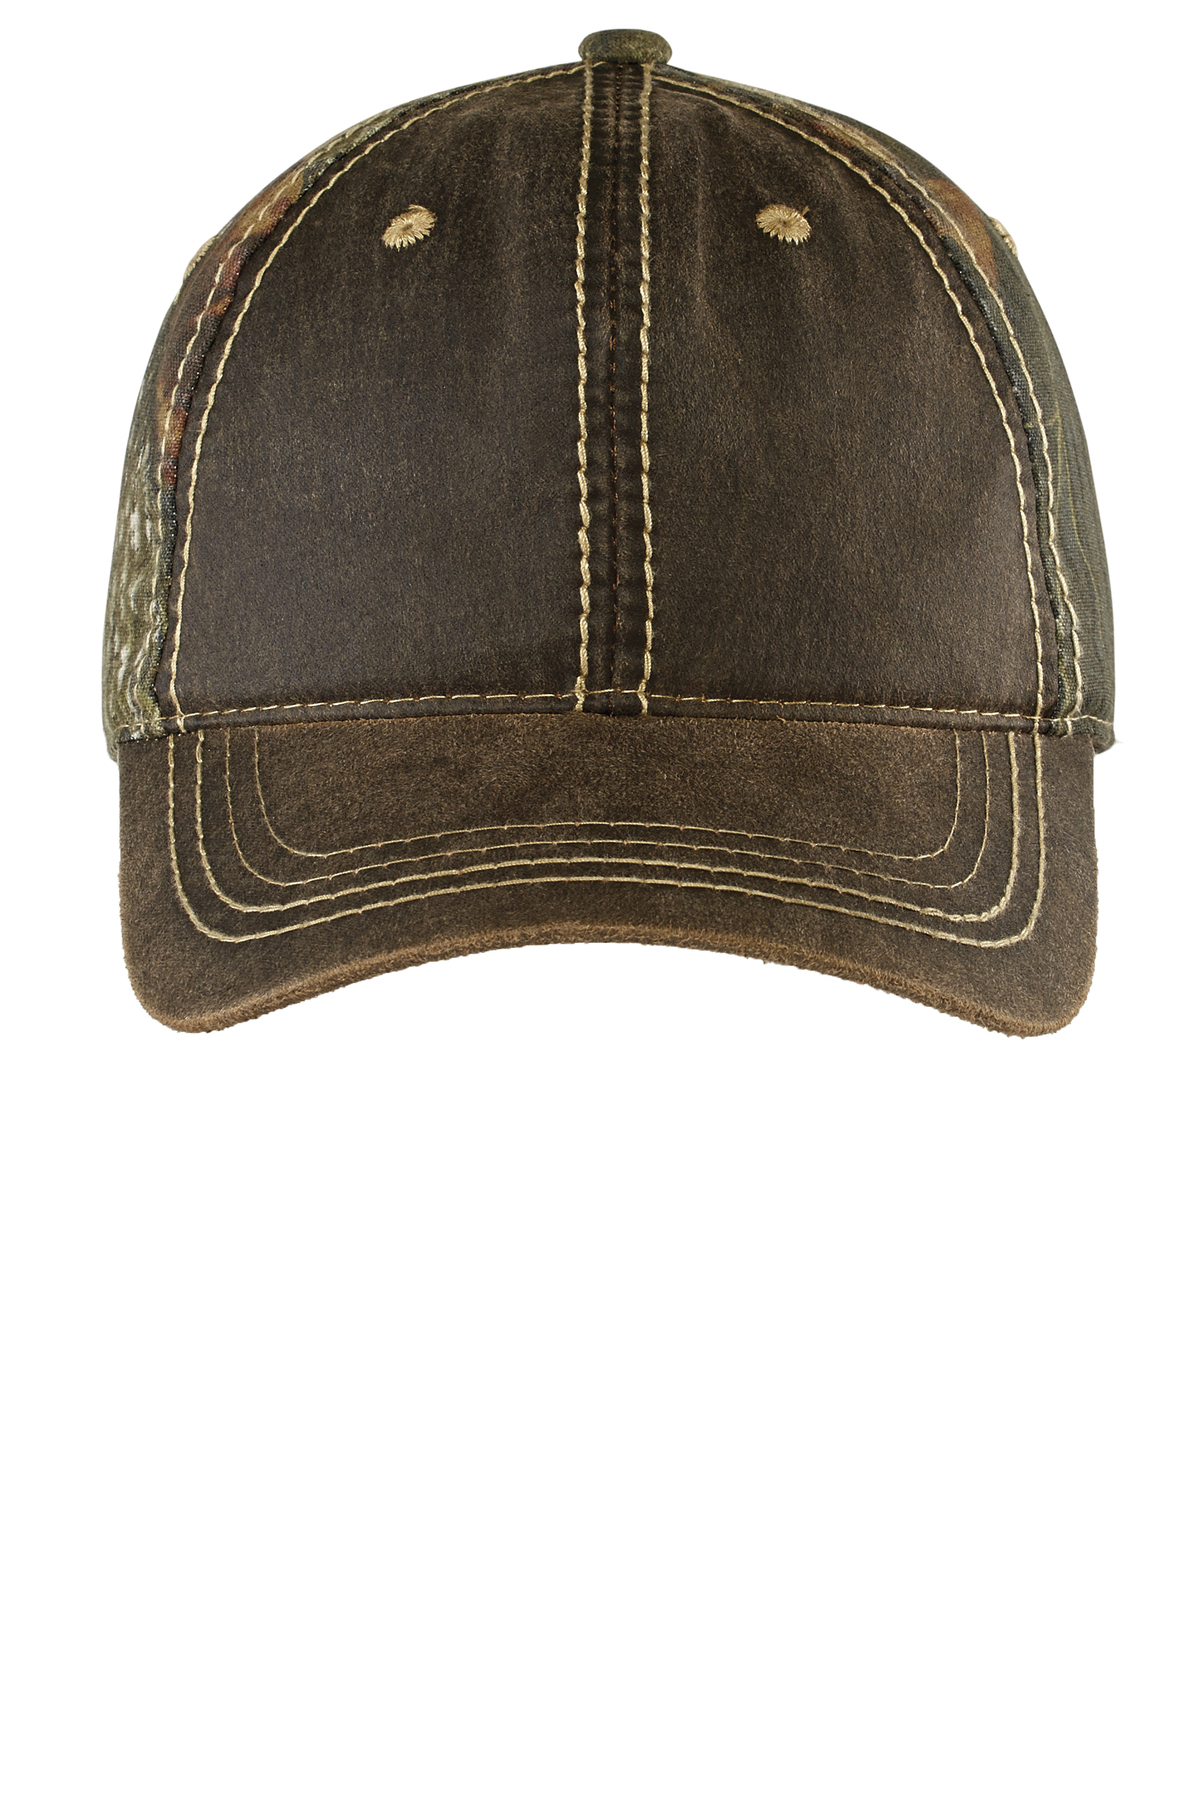 Oiled Leather Look Pigment Print Distressed Baseball Cap Unstructure Low Profile